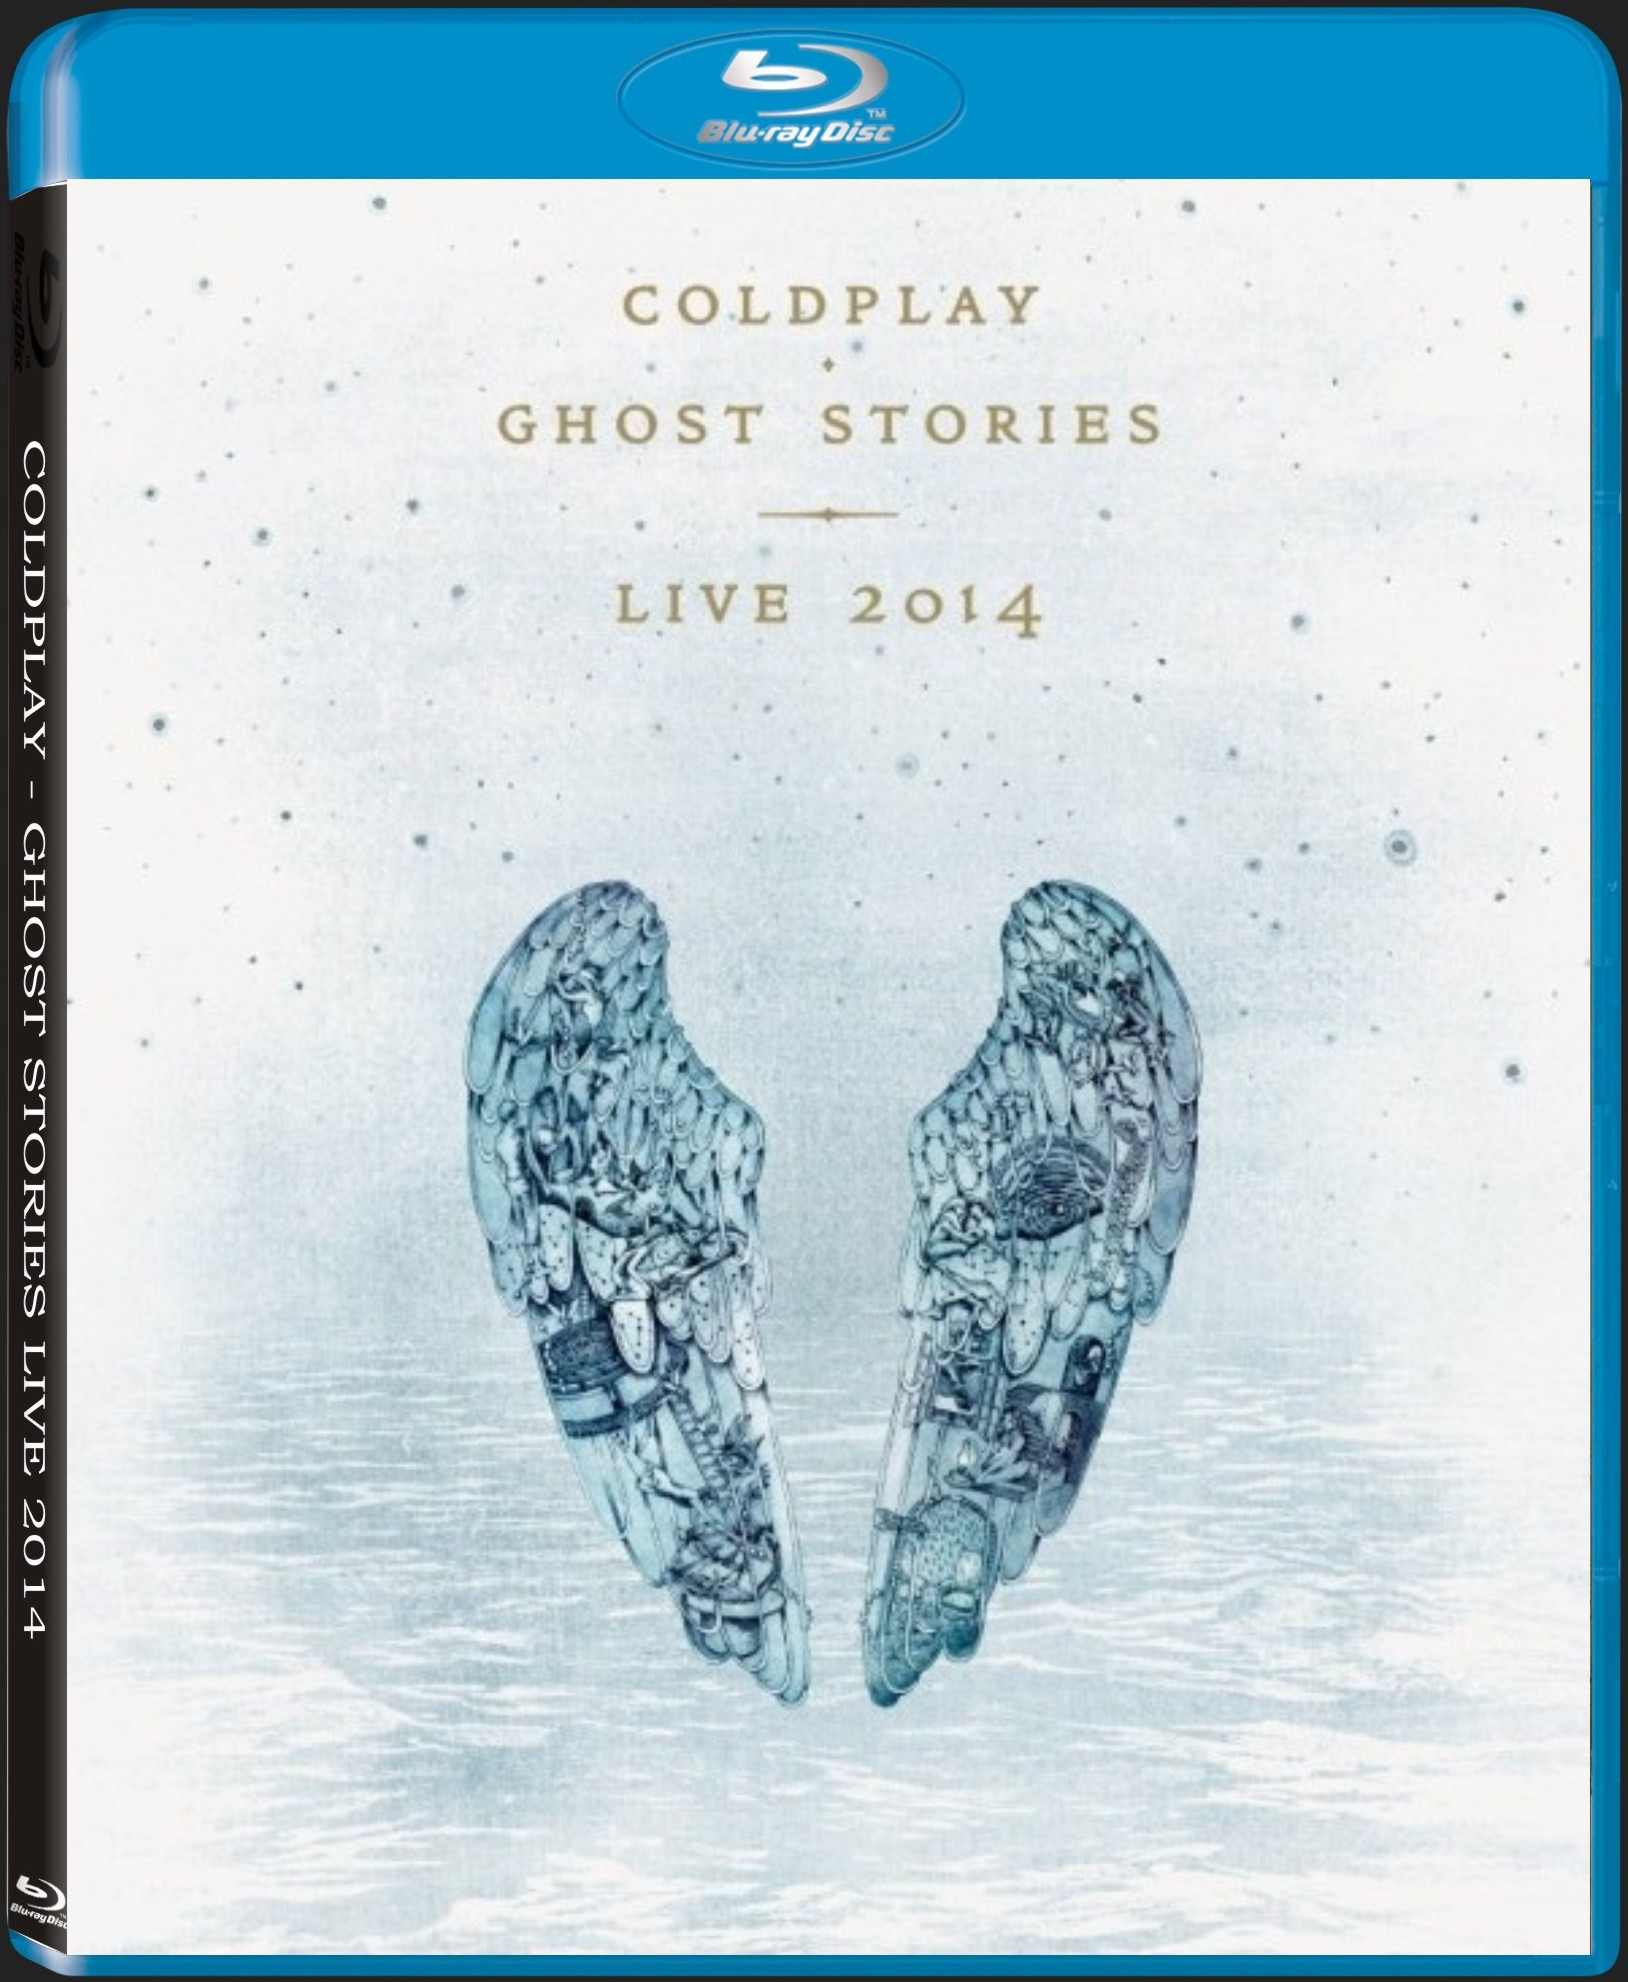 COLDPLAY - GHOST STORIES LIVE 2014 - Blu-ray